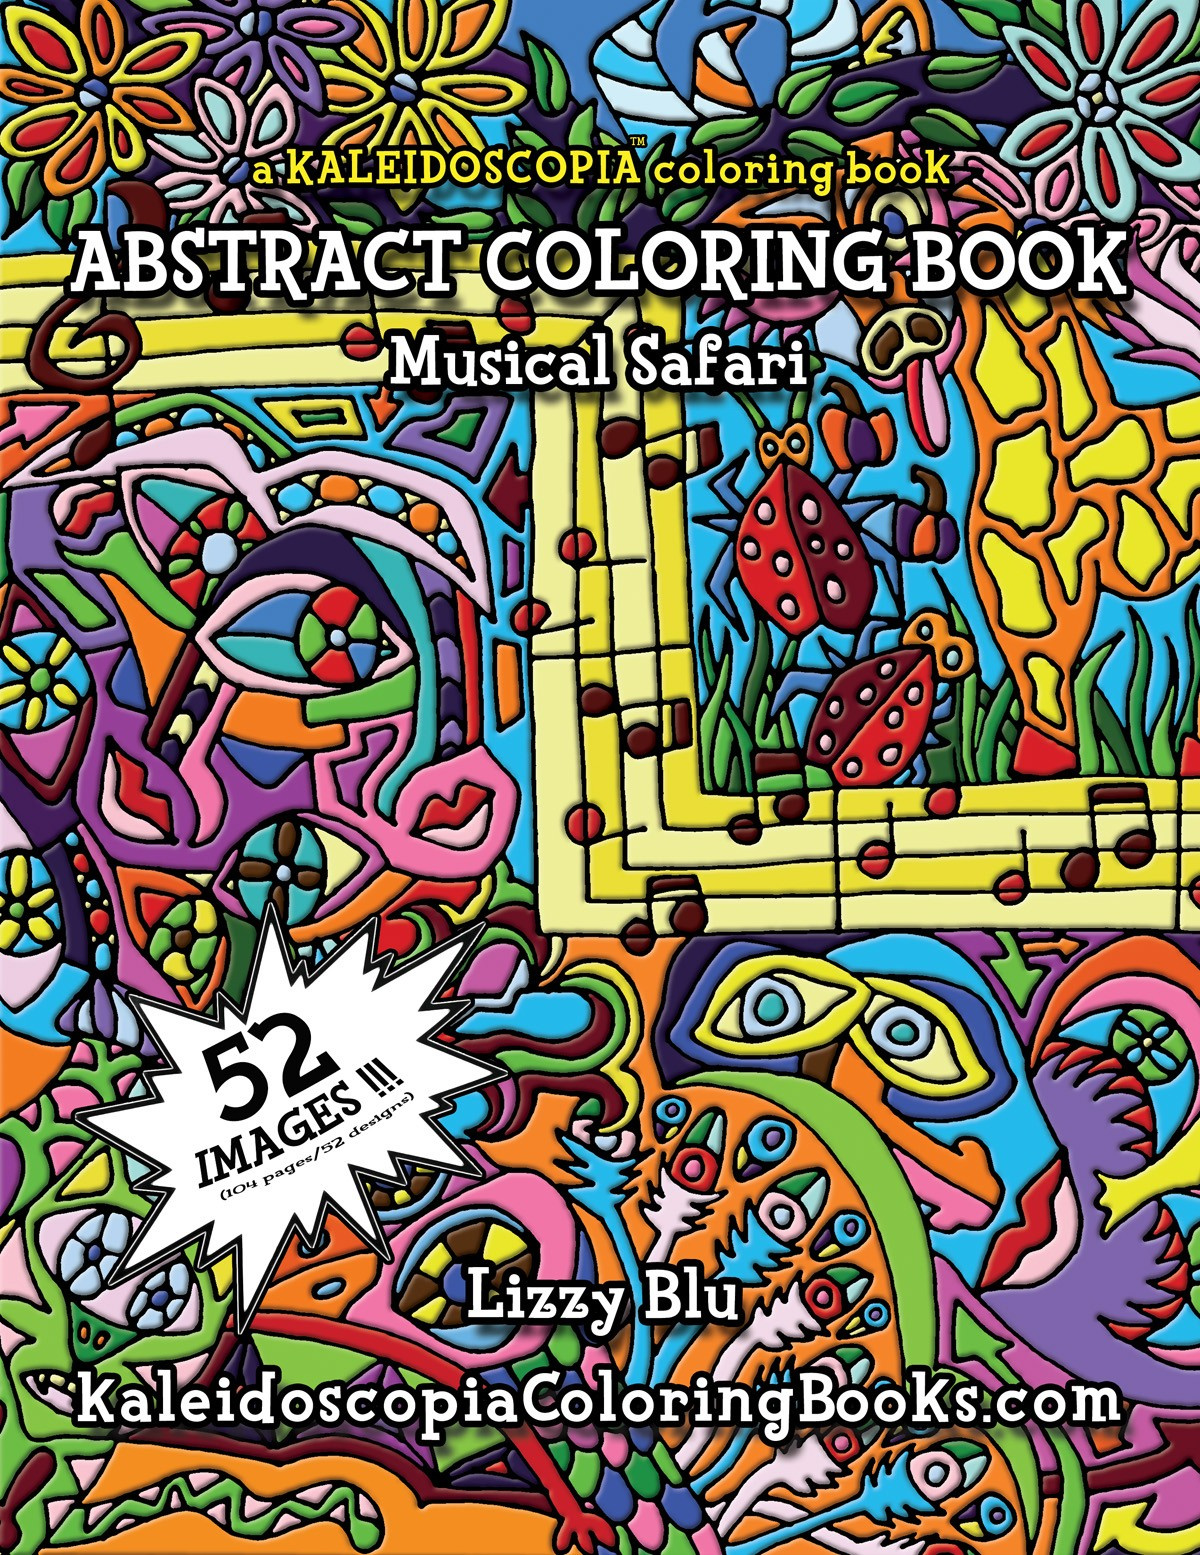 Musical Safari: An Abstract Coloring Book